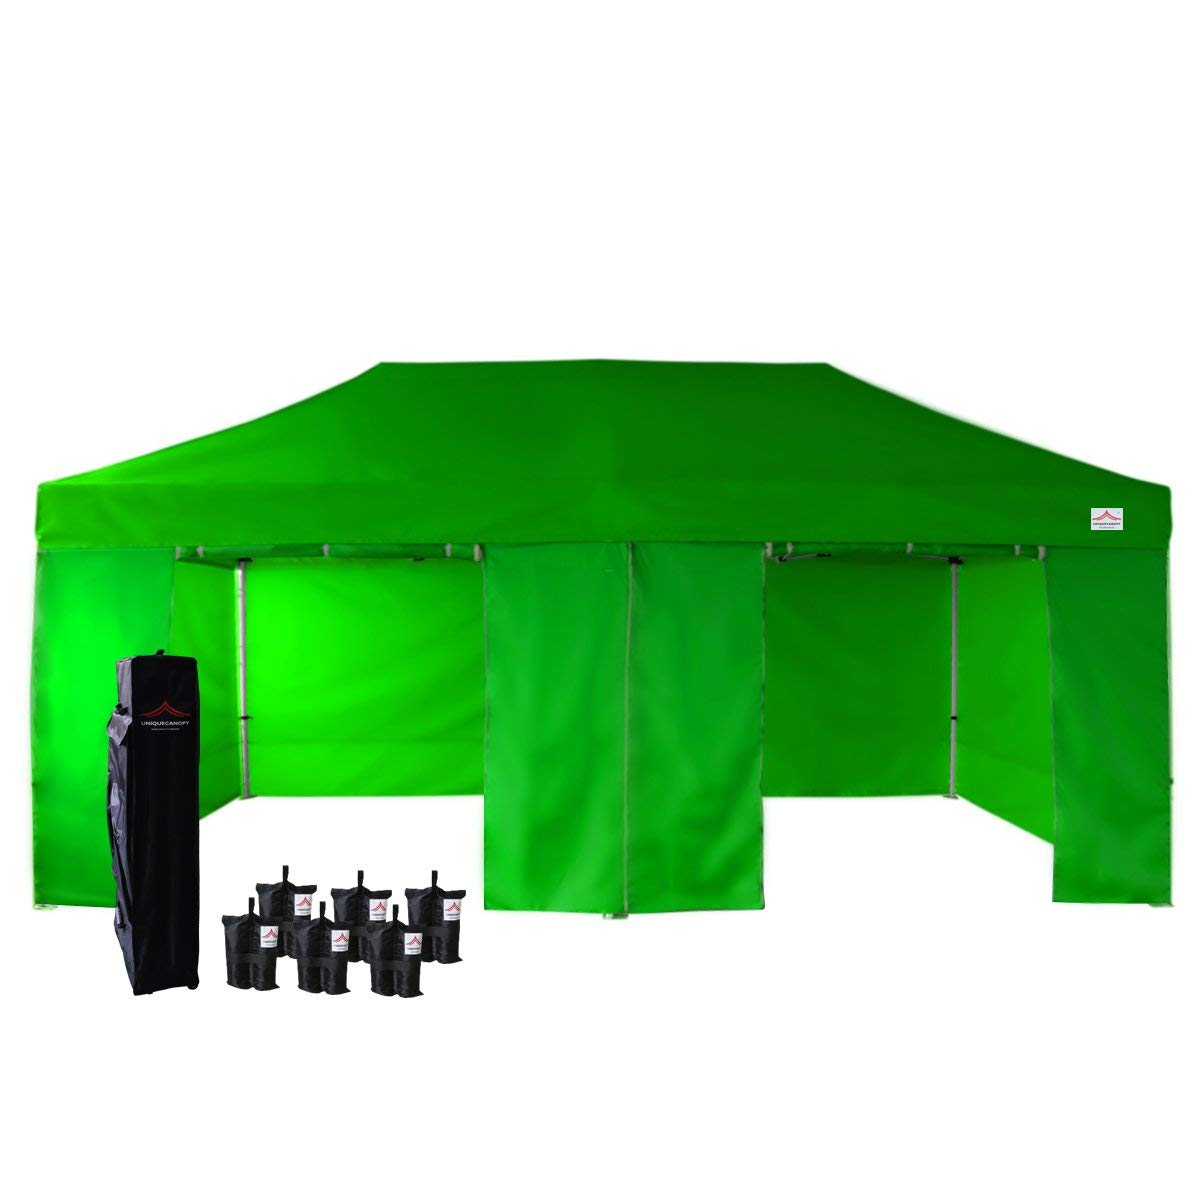 UNIQUECANOPY 500D Enhanced 10x20 Ez Pop up Canopy Portable Folded Commercial Canopy Car Shelter Wedding Party Show Tent with 4 Zippered Side Walls and Wheeled Carrying Bag Green